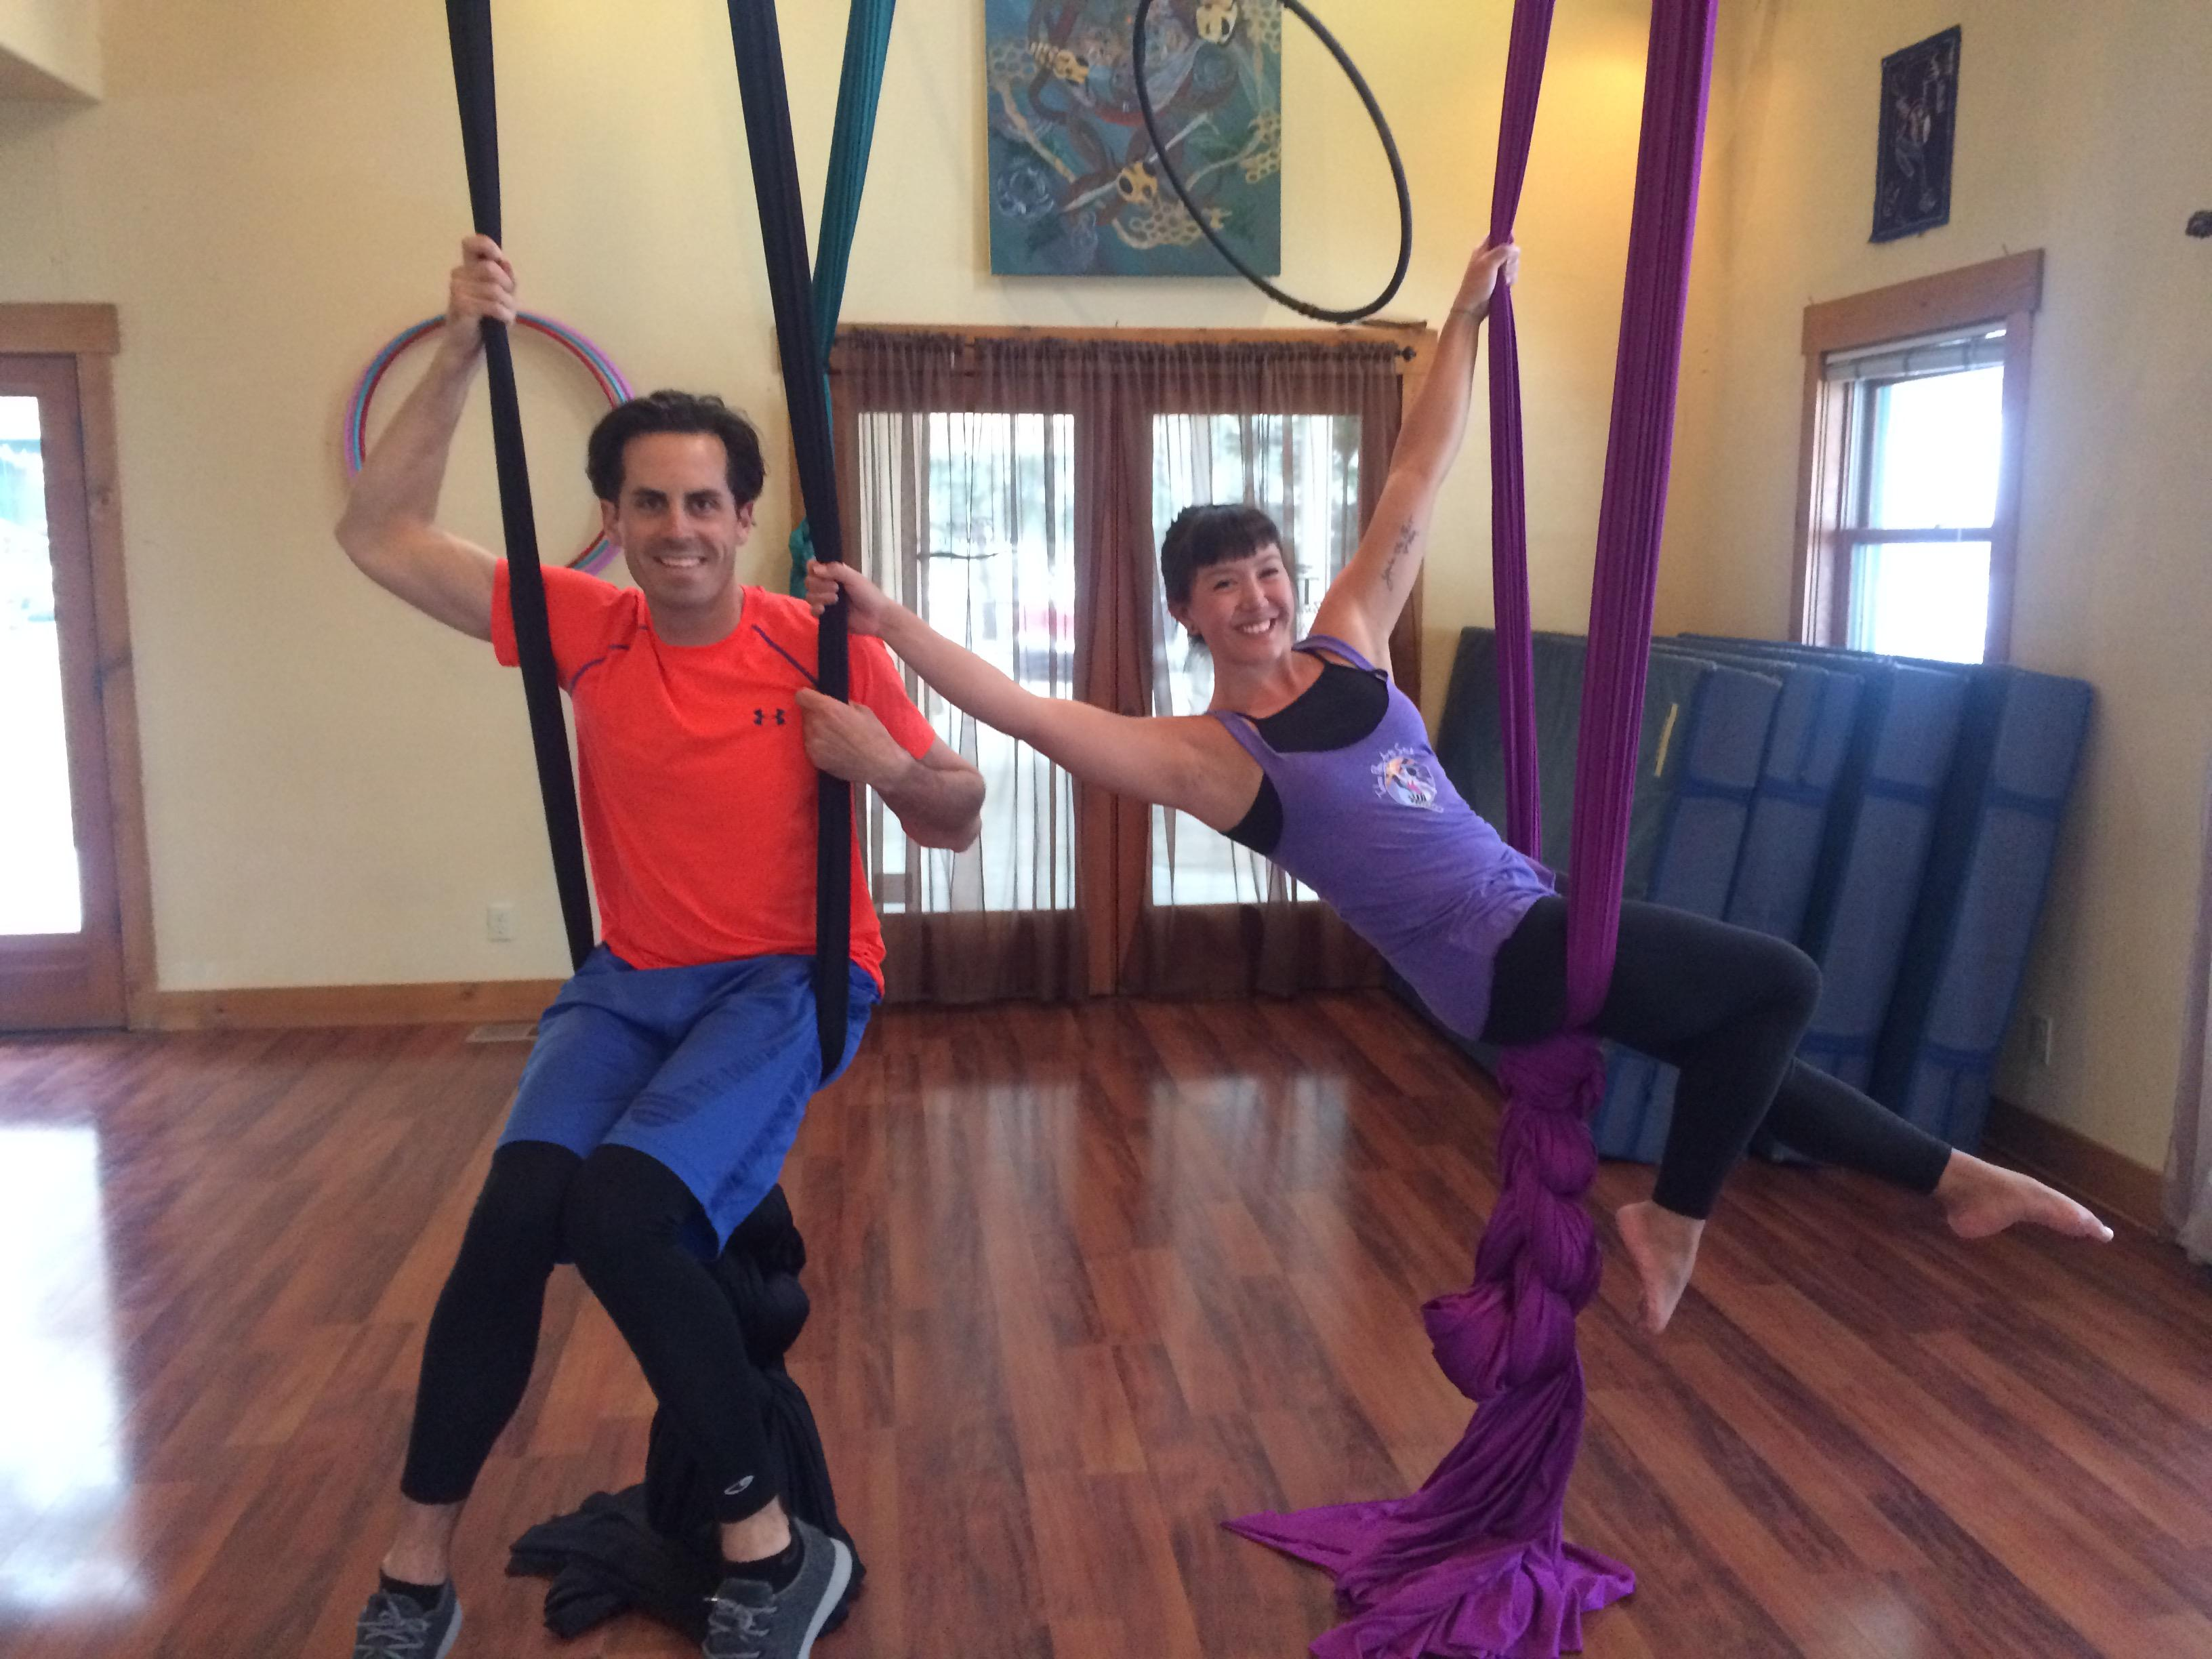 If you're thinking about health & wellness around Lake Tahoe - Tahoe Flow Arts offers aerial fabrics classes.